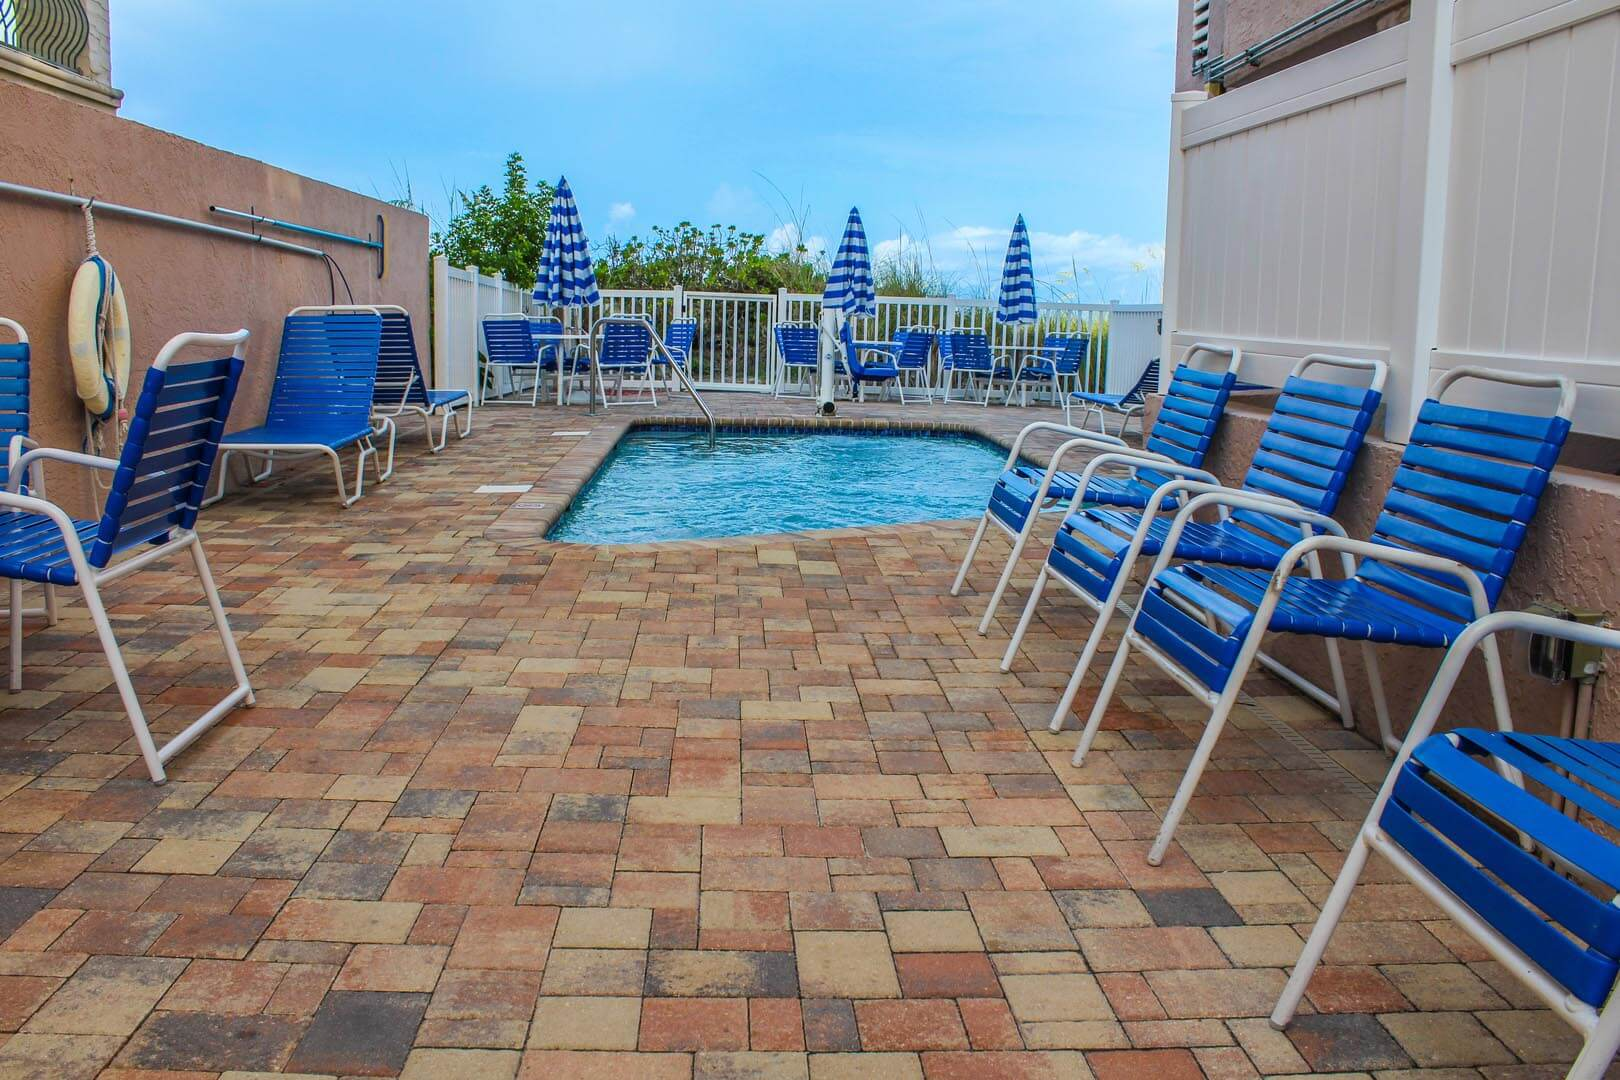 The outdoor swimming pool at VRI's Island Gulf Resort in Madeira Beach, Florida.